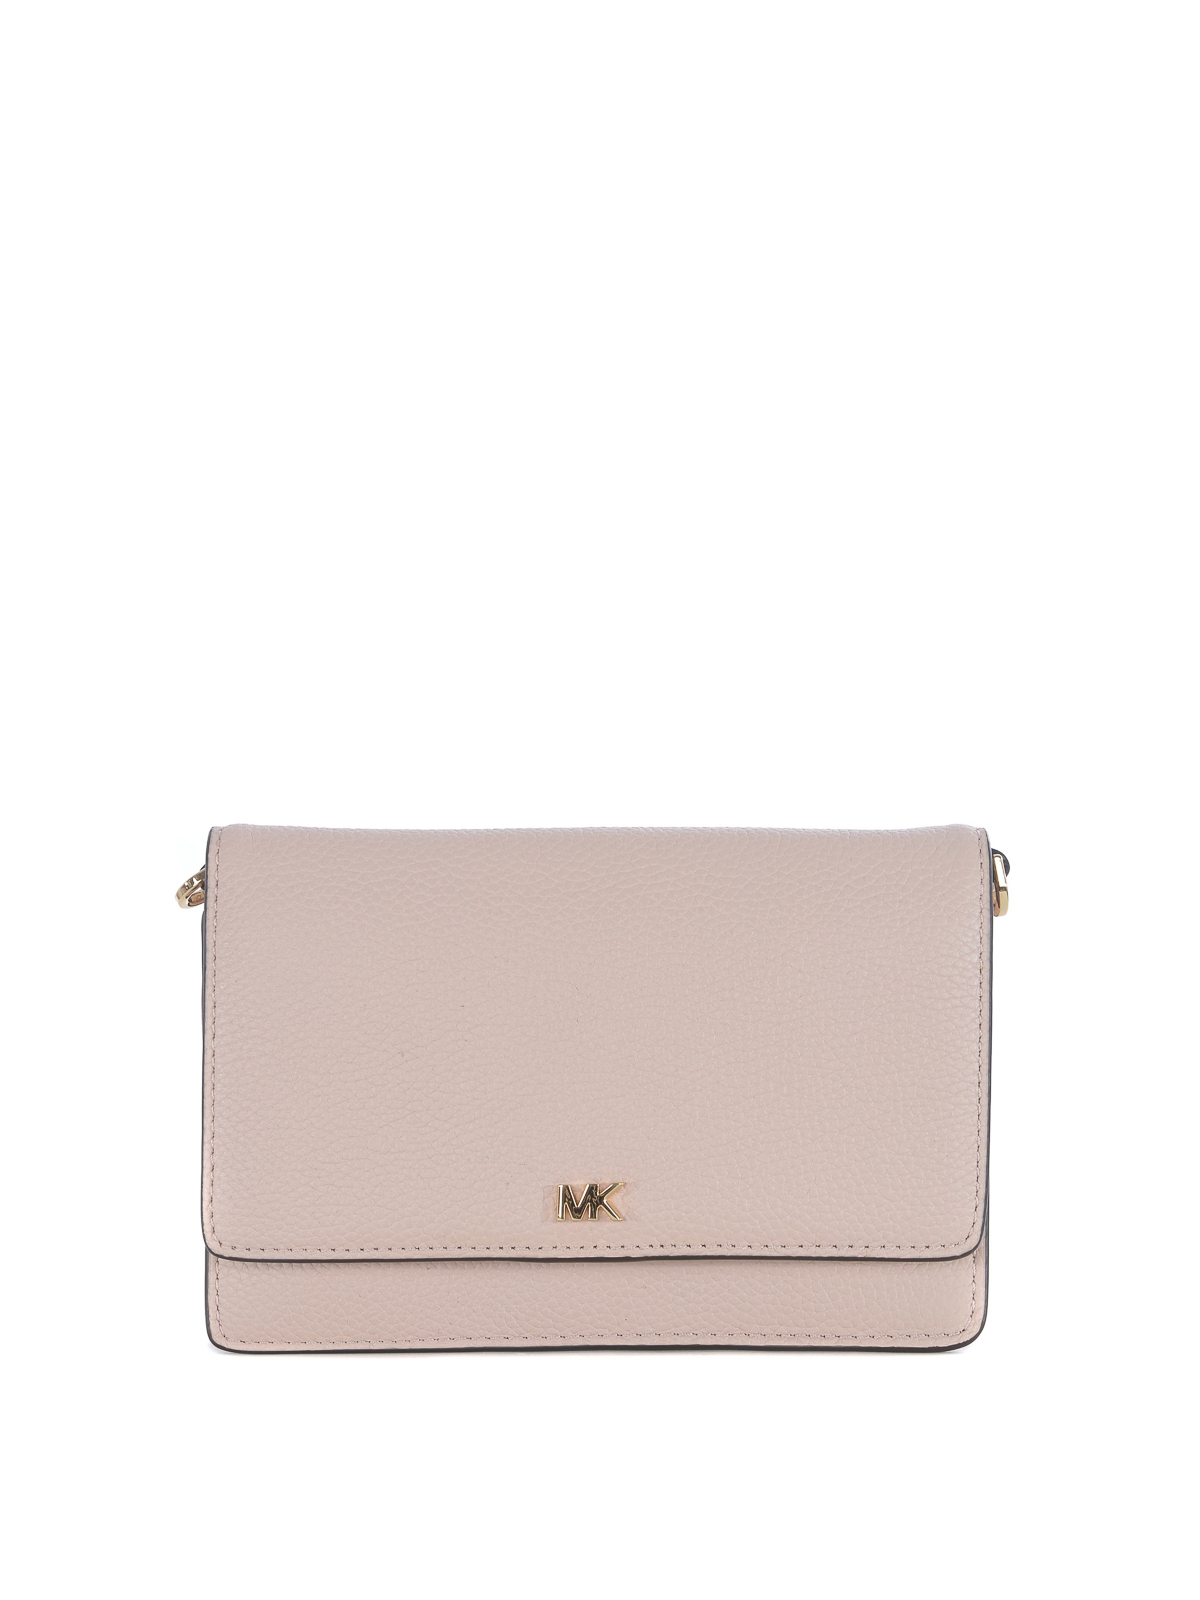 112dcf2ecfeb MICHAEL KORS: cross body bags - Mercer light pink smartphone cross body bag